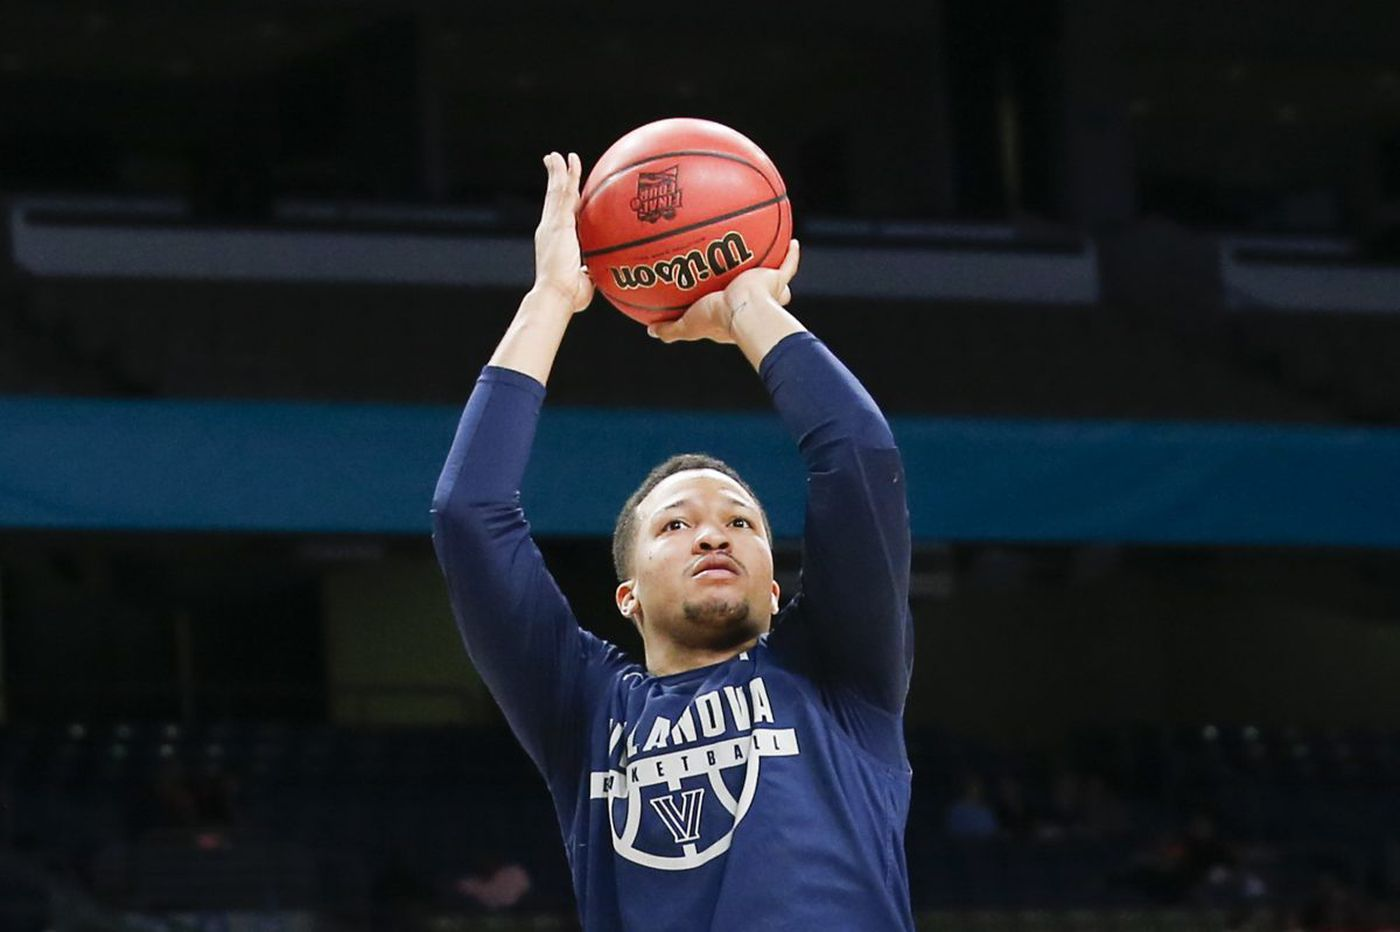 Villanova's Final Four meeting is another marquee matchup for Jalen Brunson